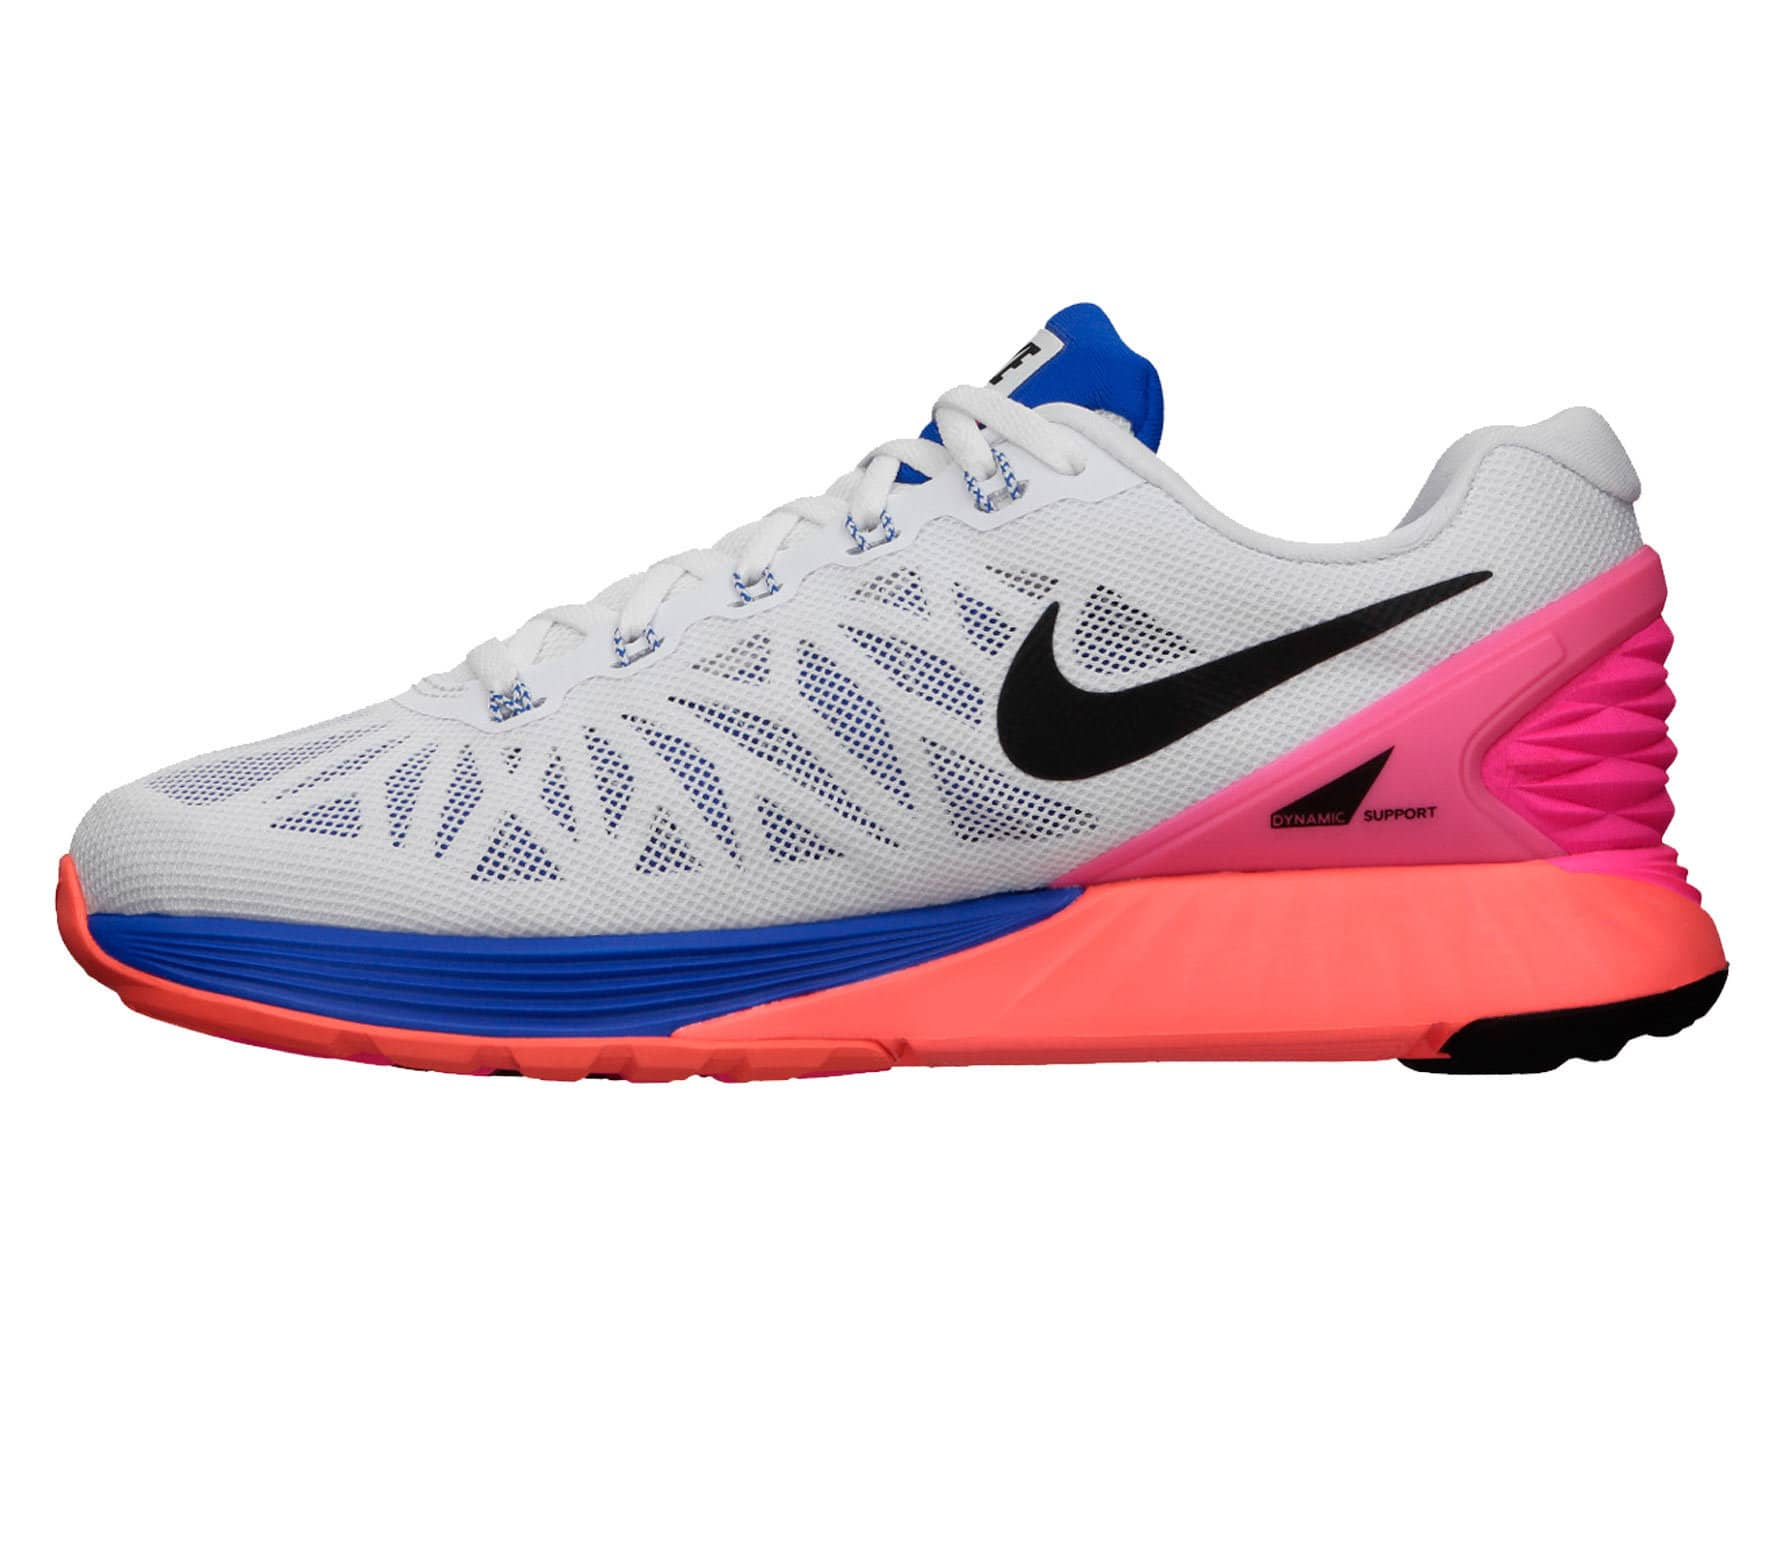 d1ac3108a88b Nike - Lunarglide 6 women s running shoes (white pink) - buy it at ...